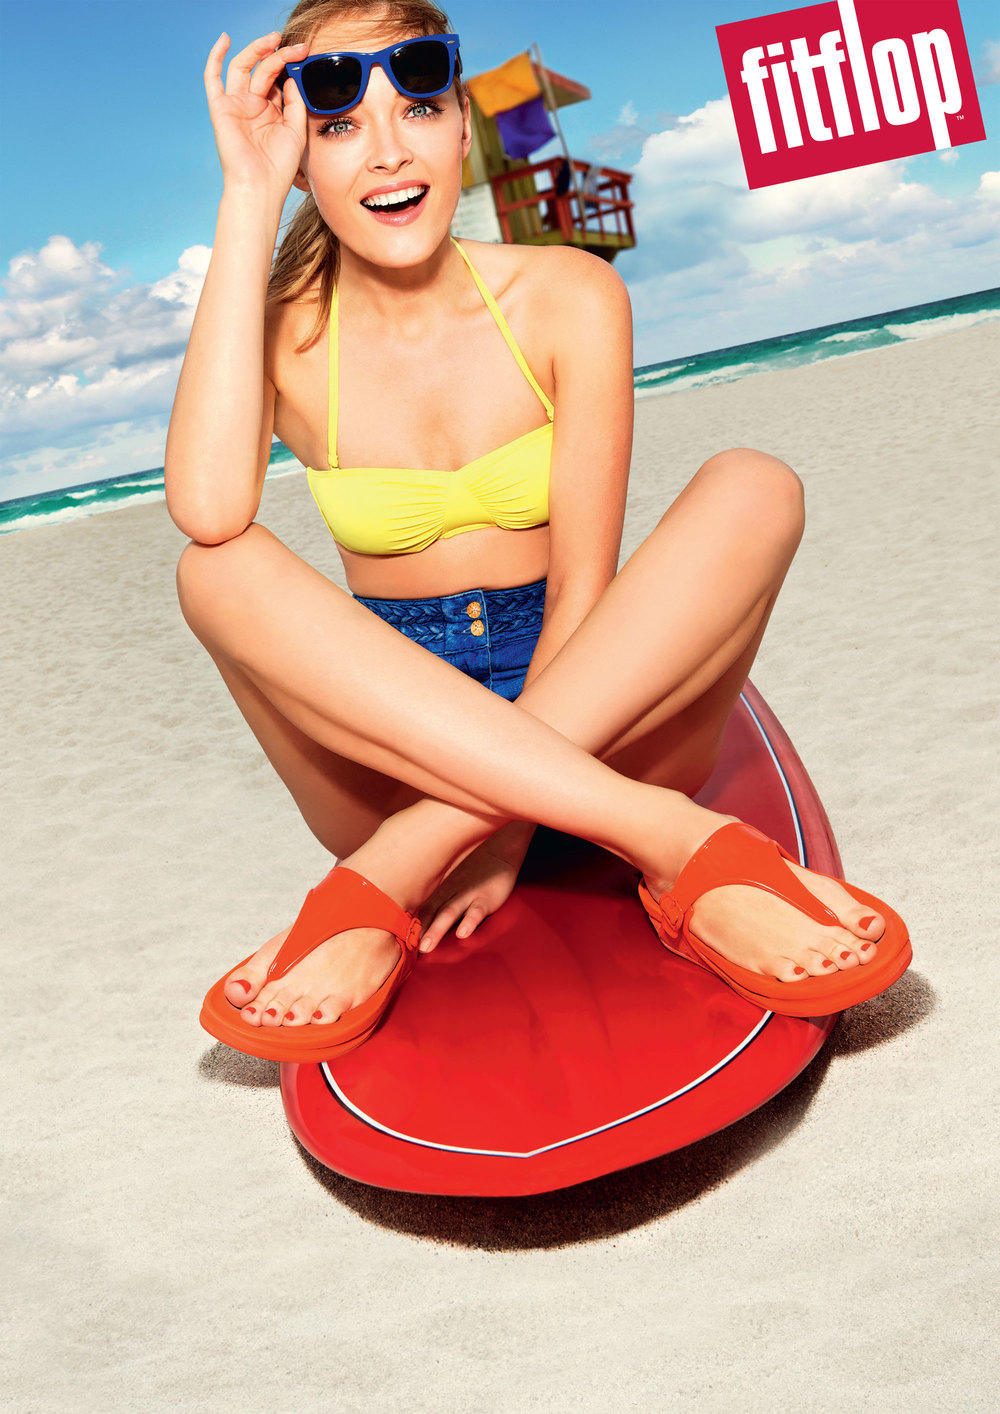 Tracy Murphy for FitFlop's 2014 Autumn/Winter campaign